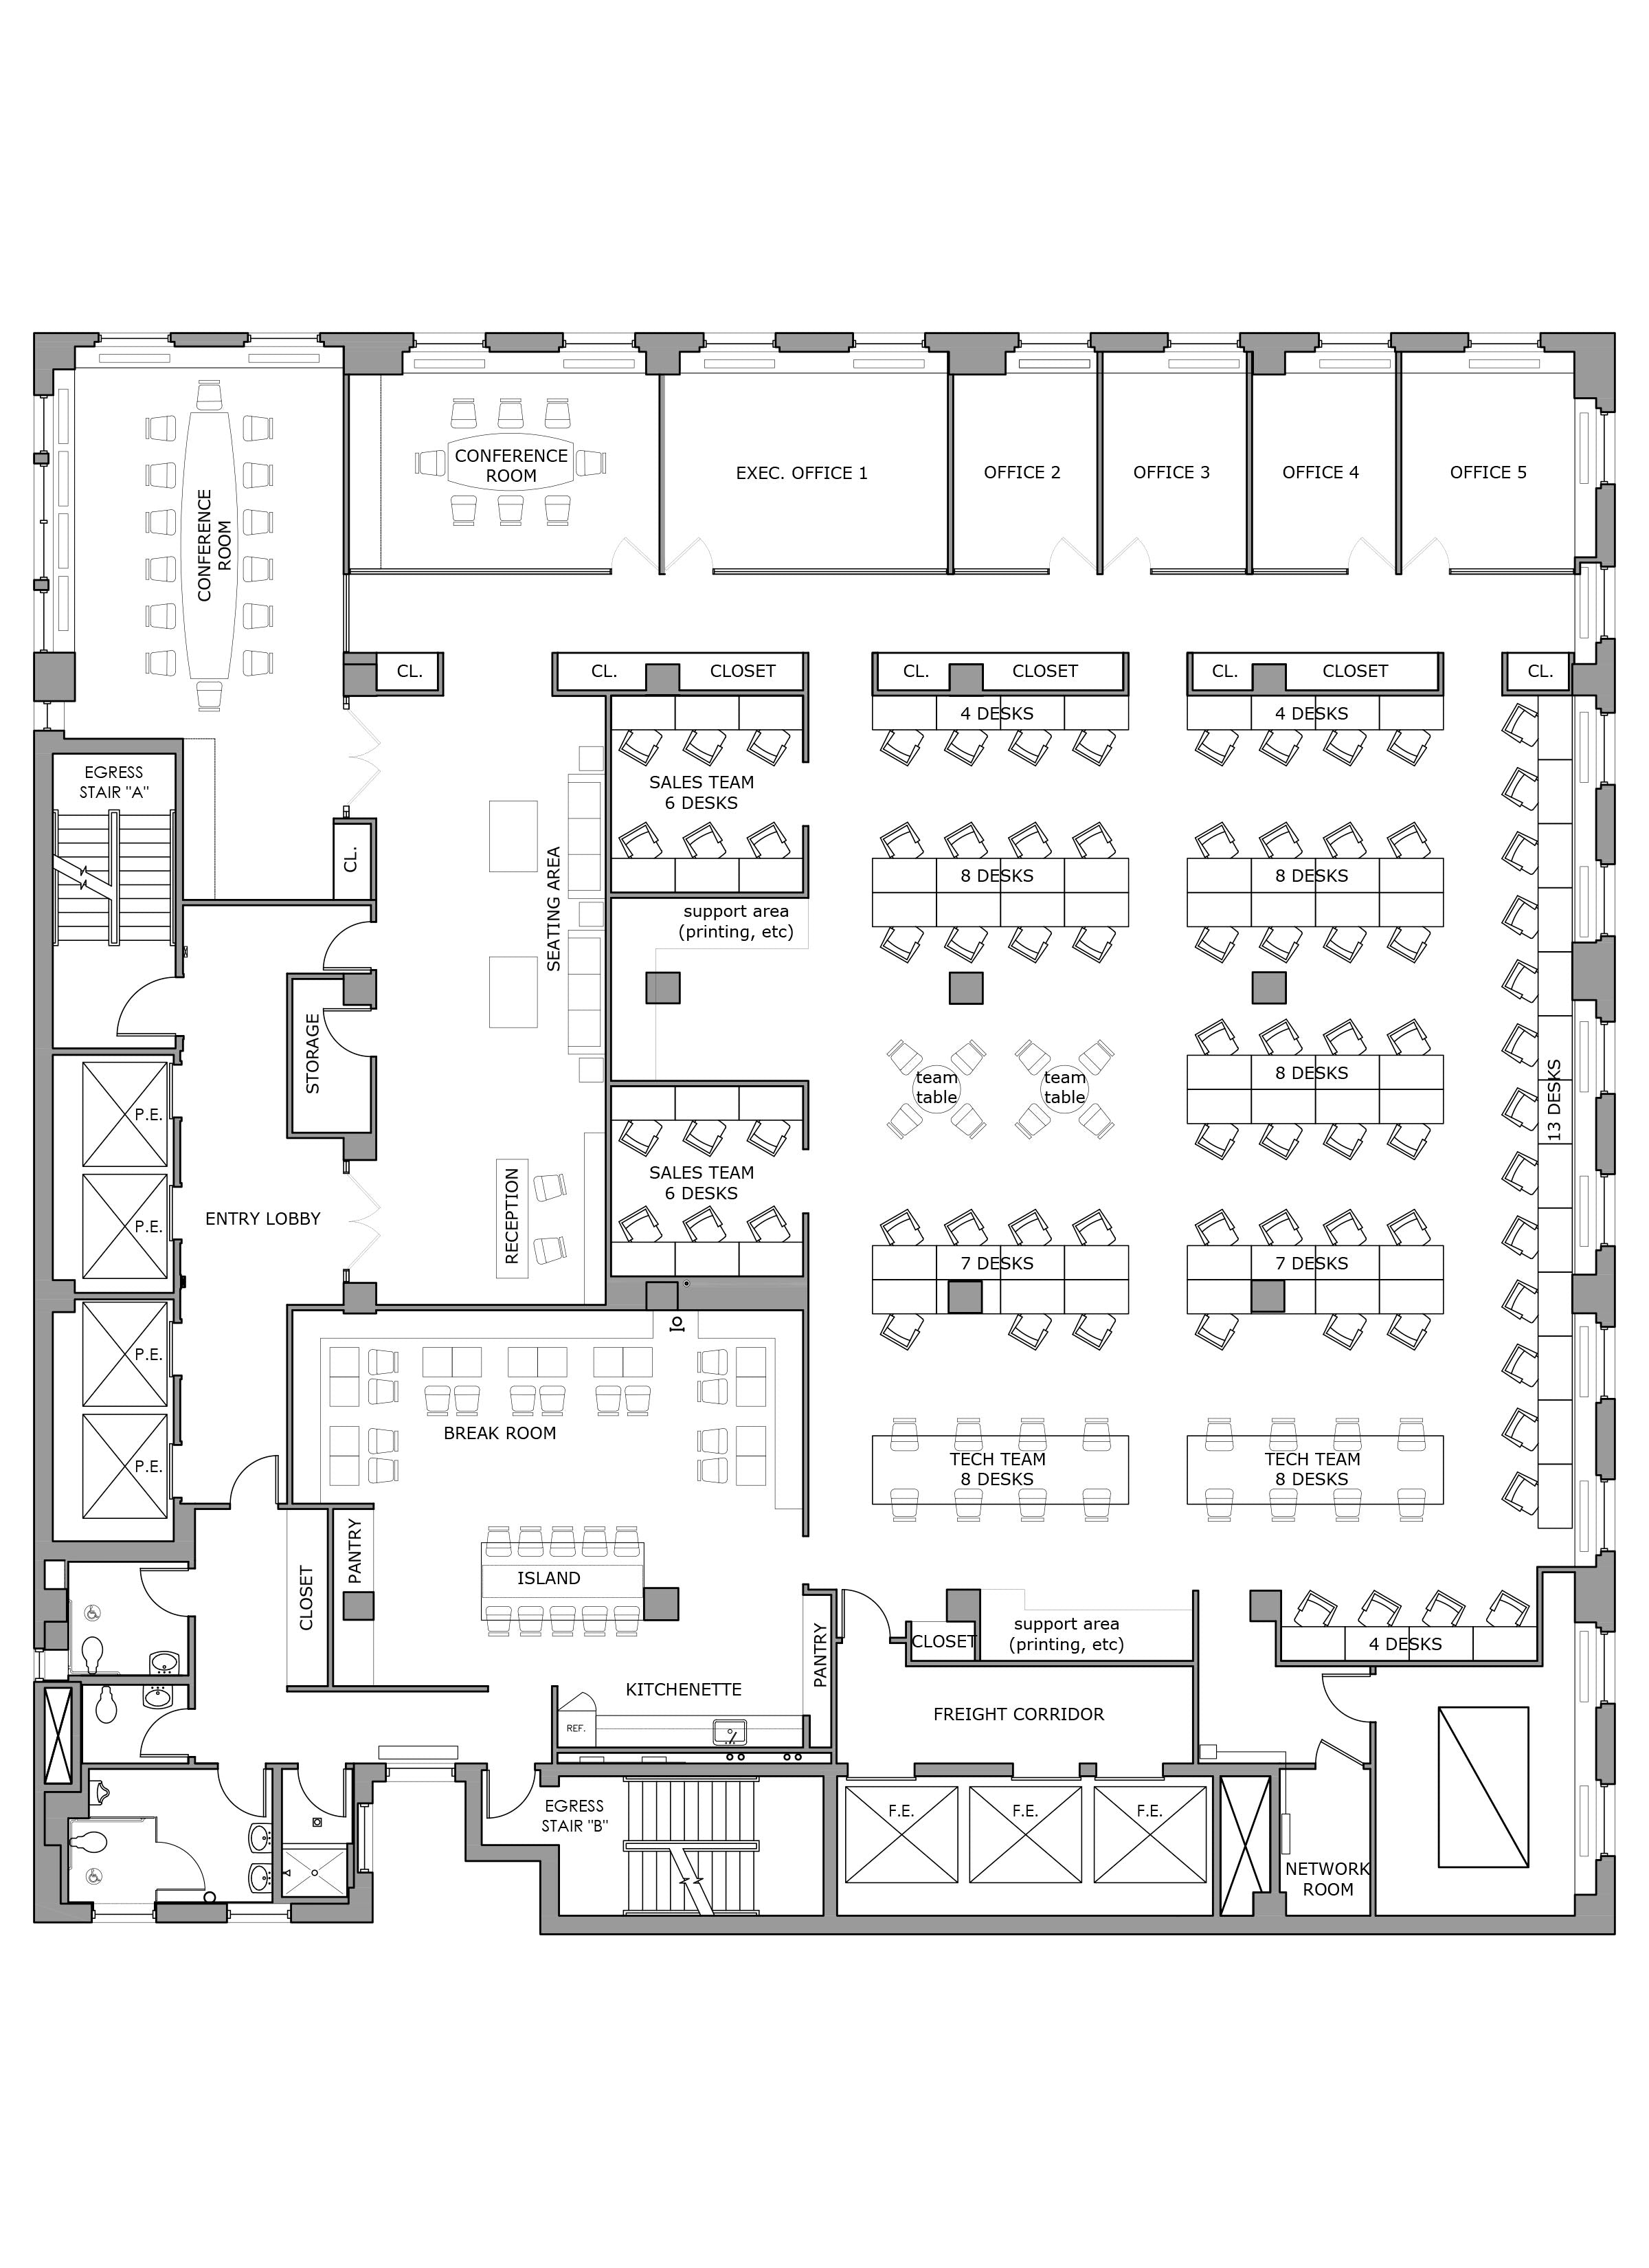 Floor plan design - Office test fit_NYC